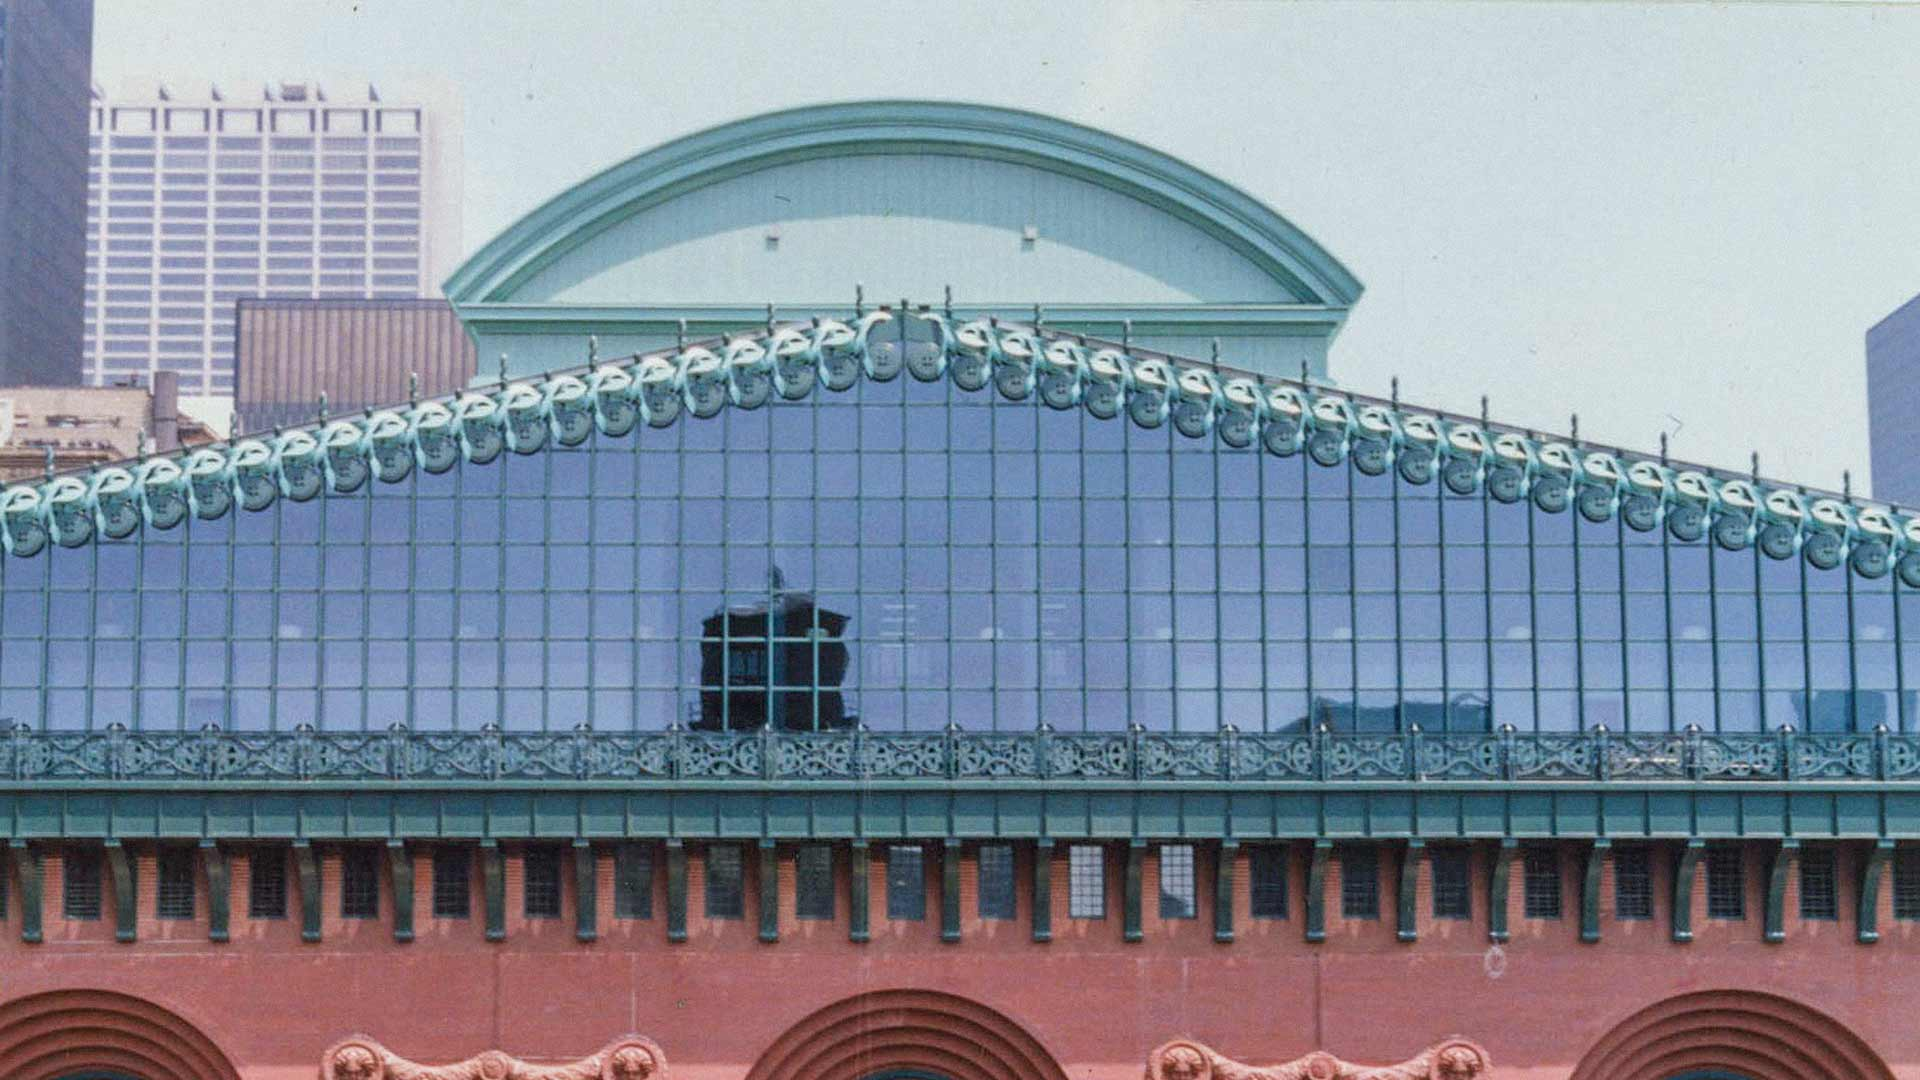 The aluminum cornices for the Harold Washington Library in Chicago, Illinois.